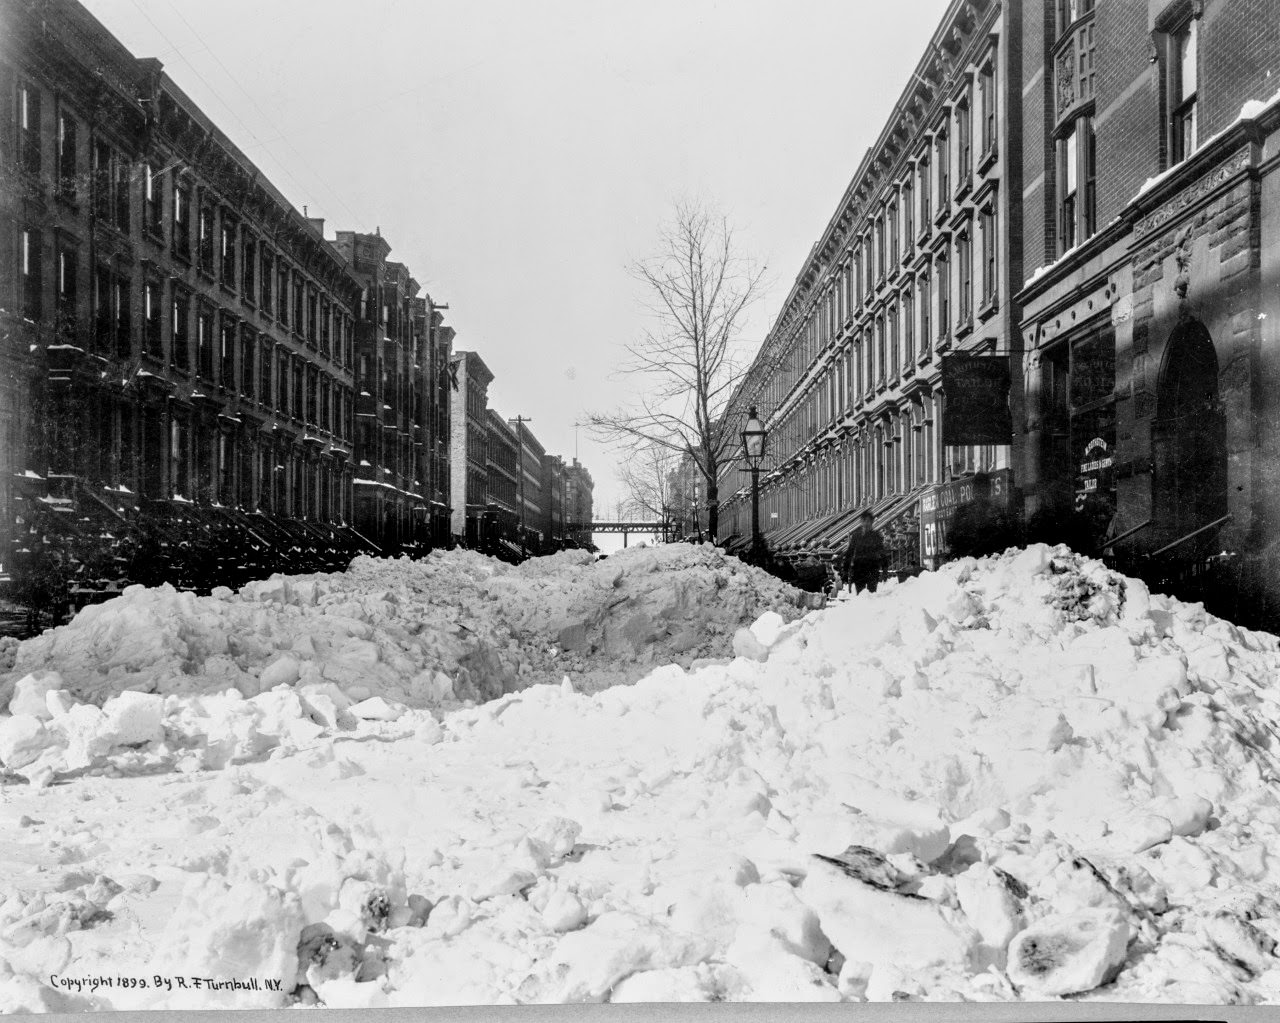 Harlem, after the Blizzard of February 13, 1899